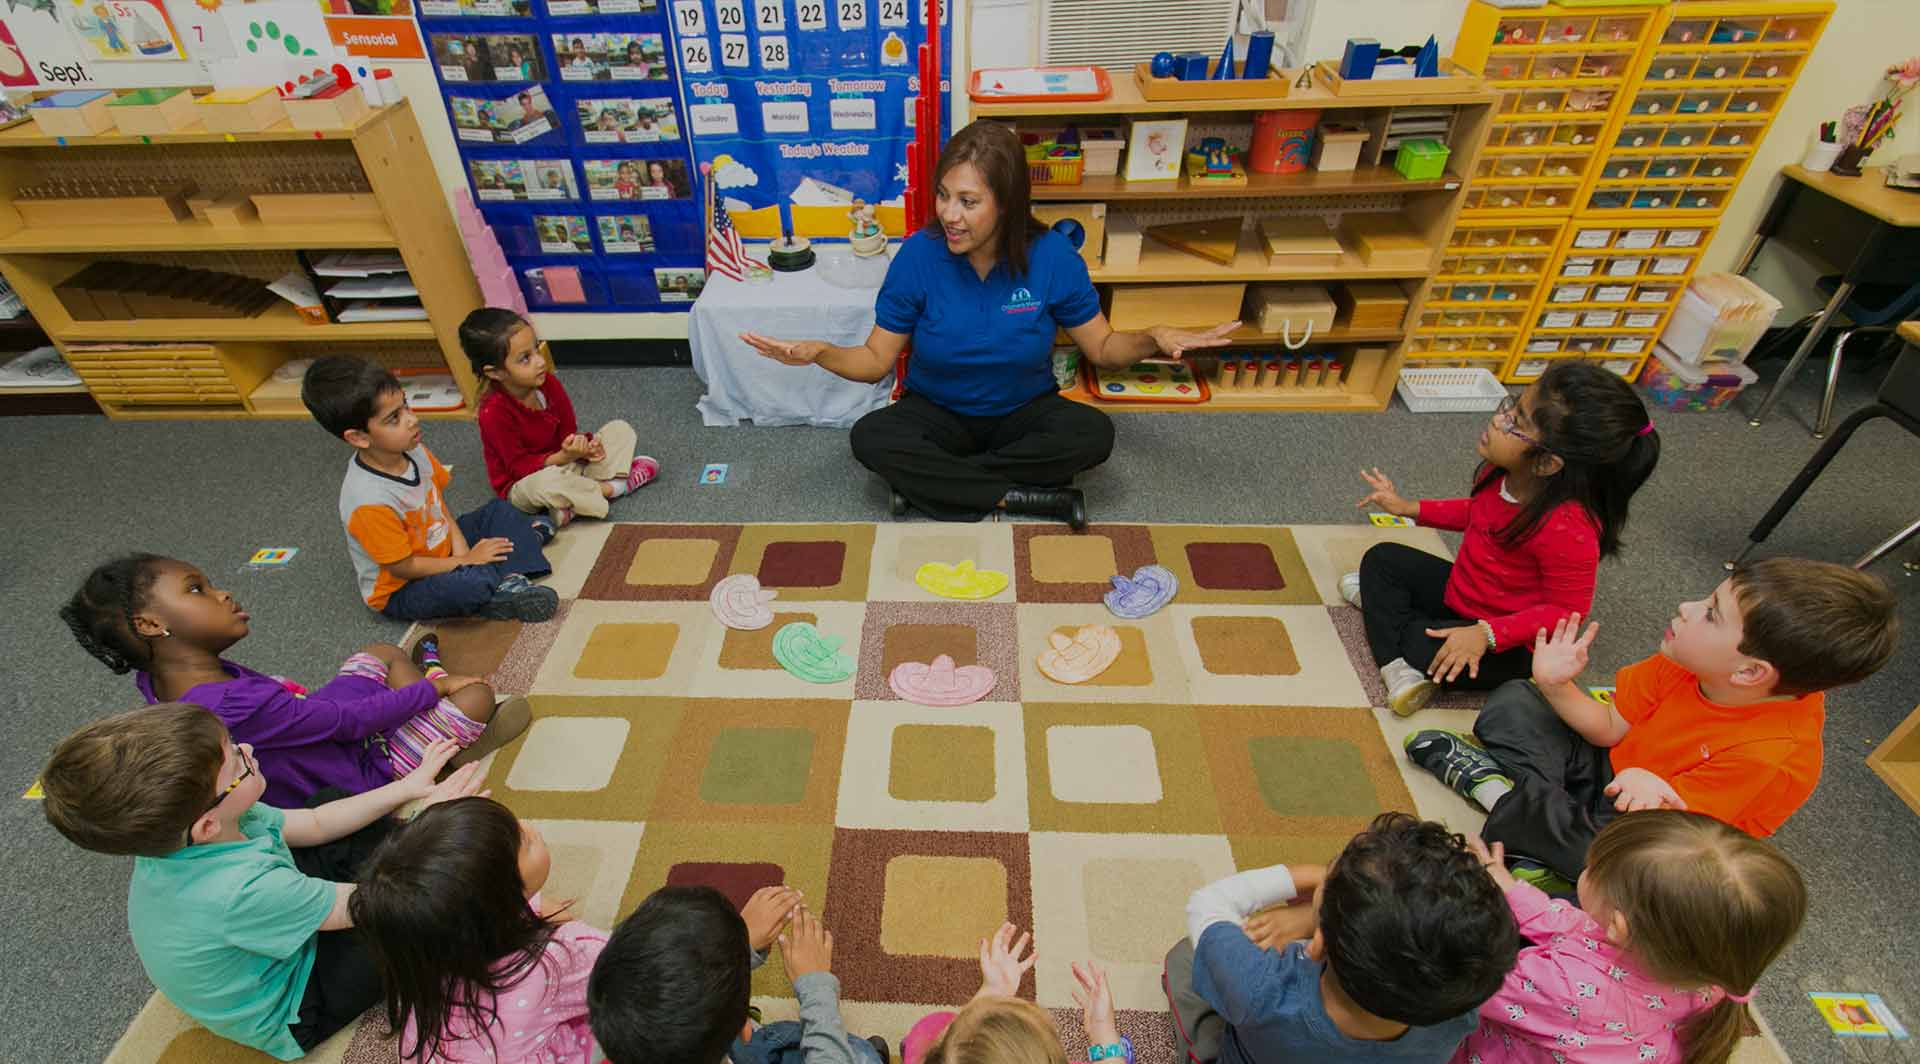 Children learning at Children's Magnet Montessori School.